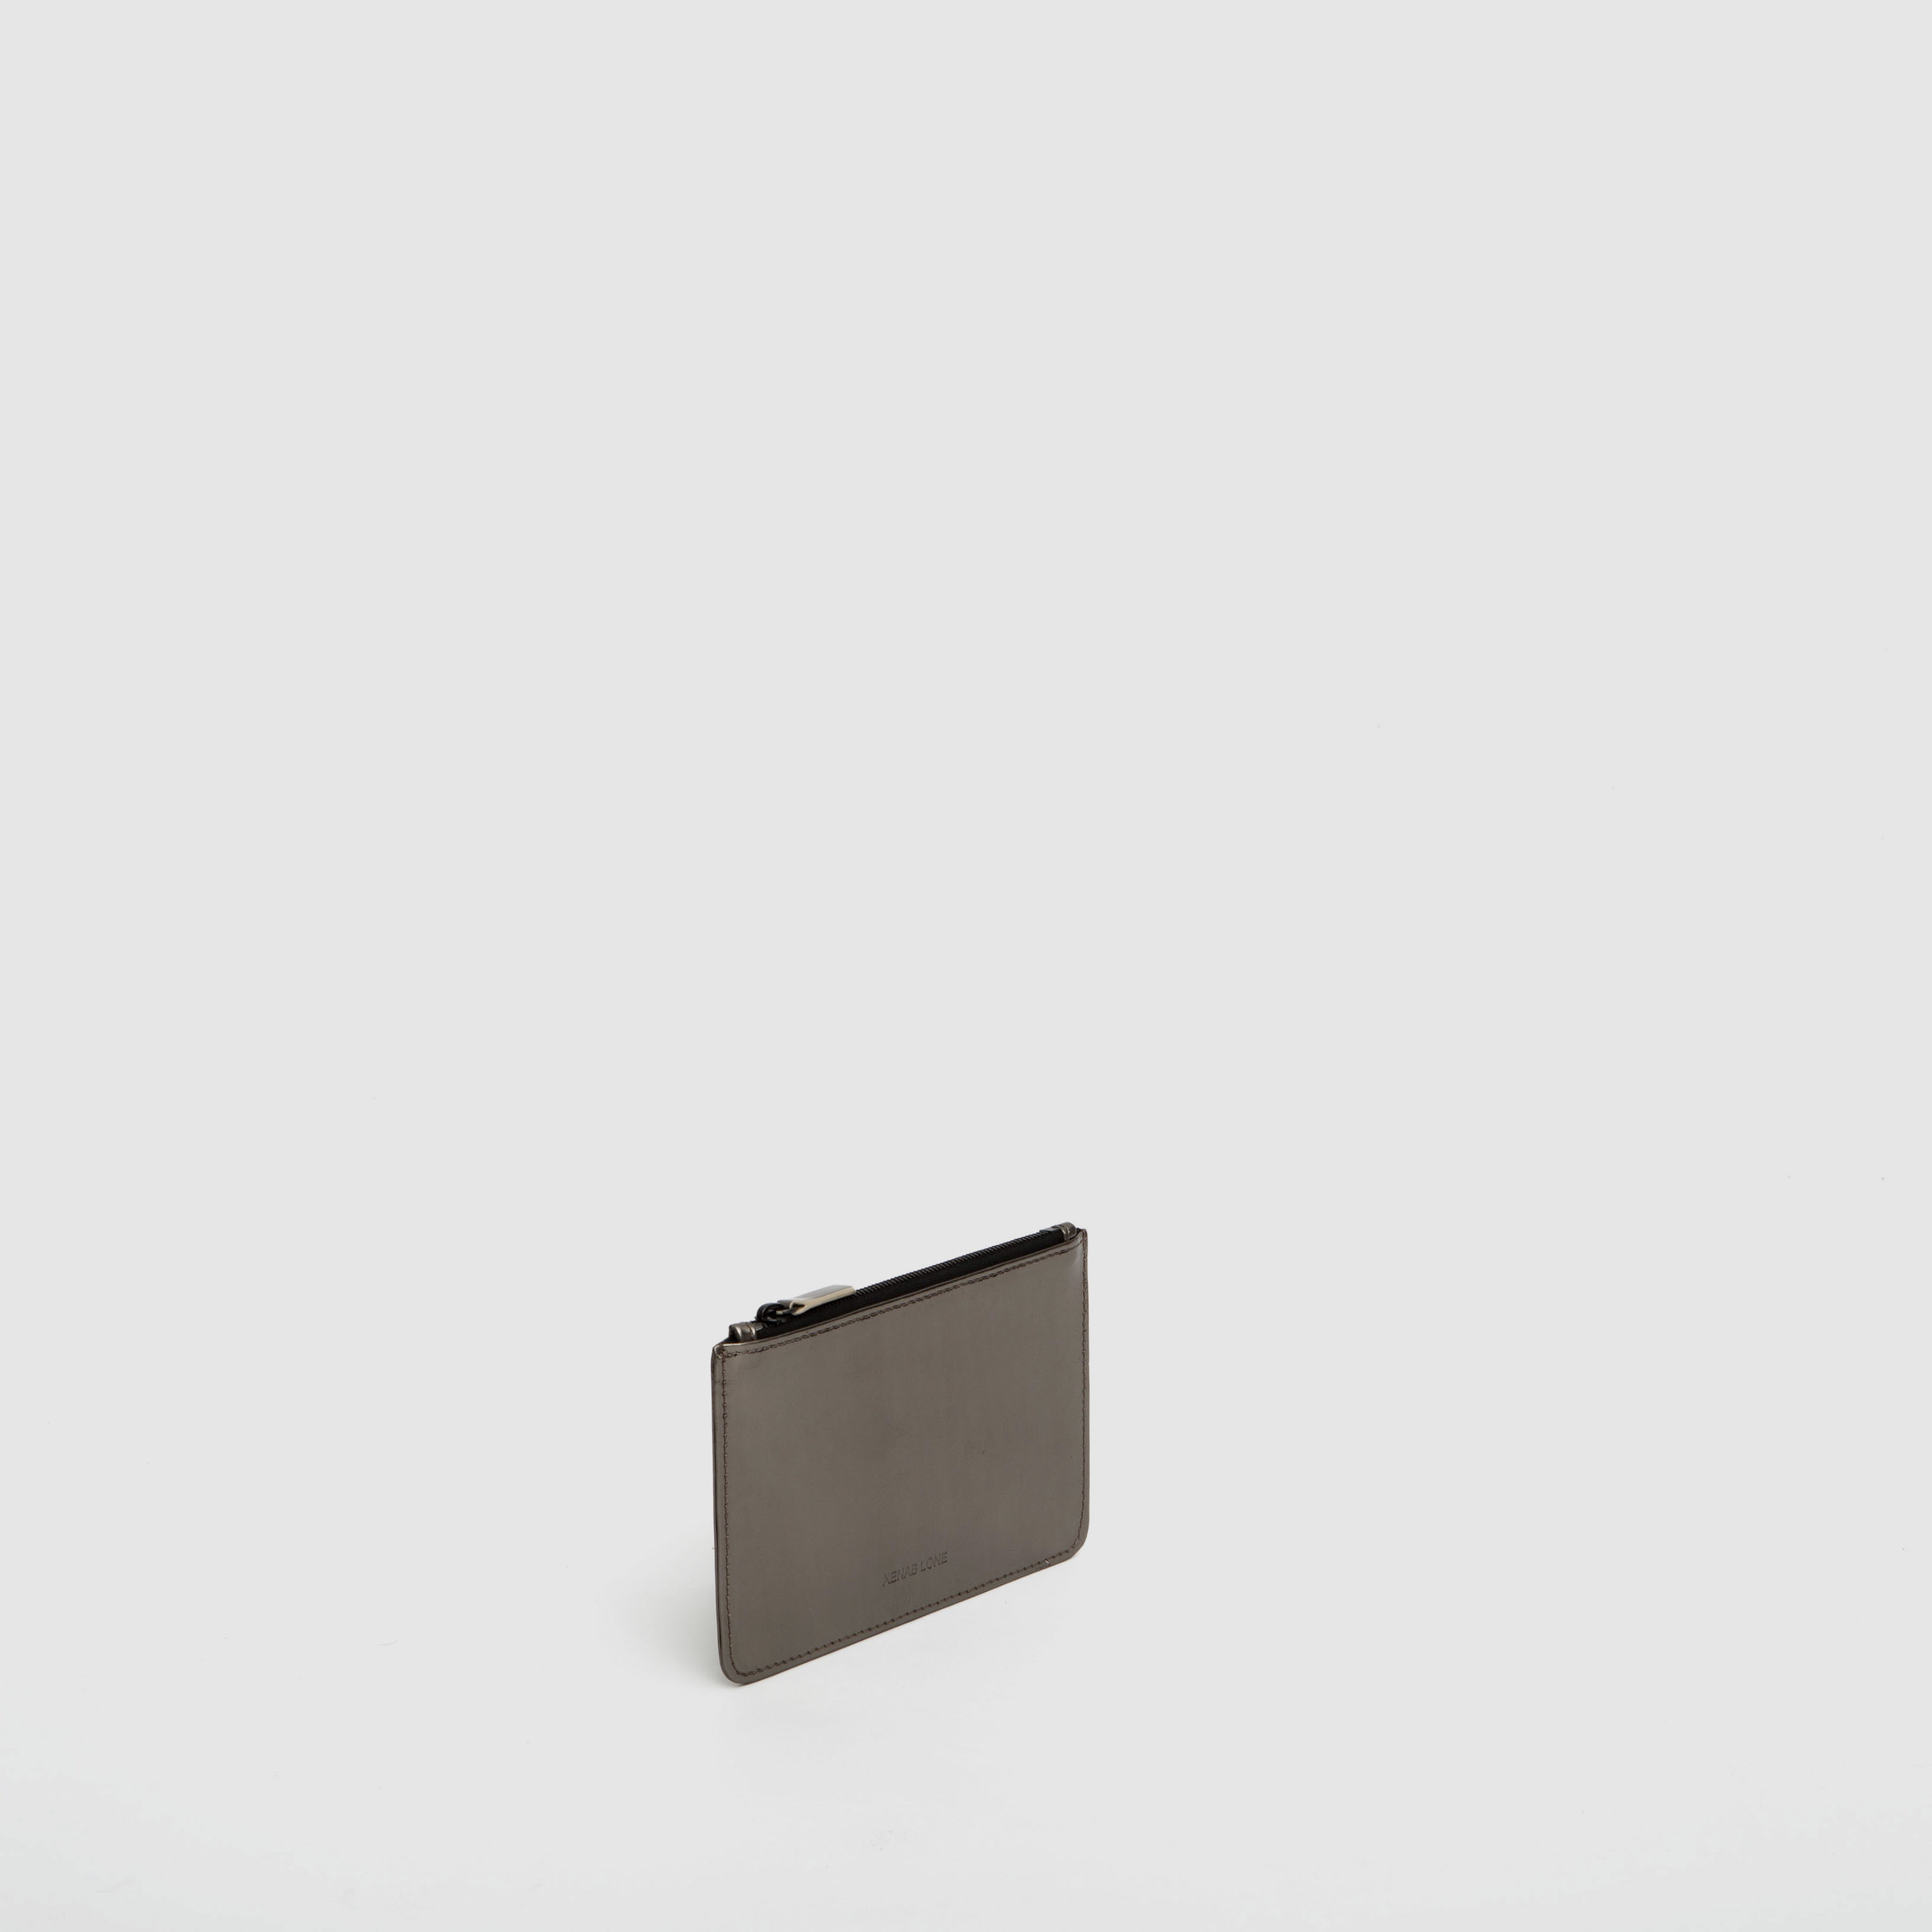 Wallets&Pouches_0003s_0000s_0002_Layer 2.jpg